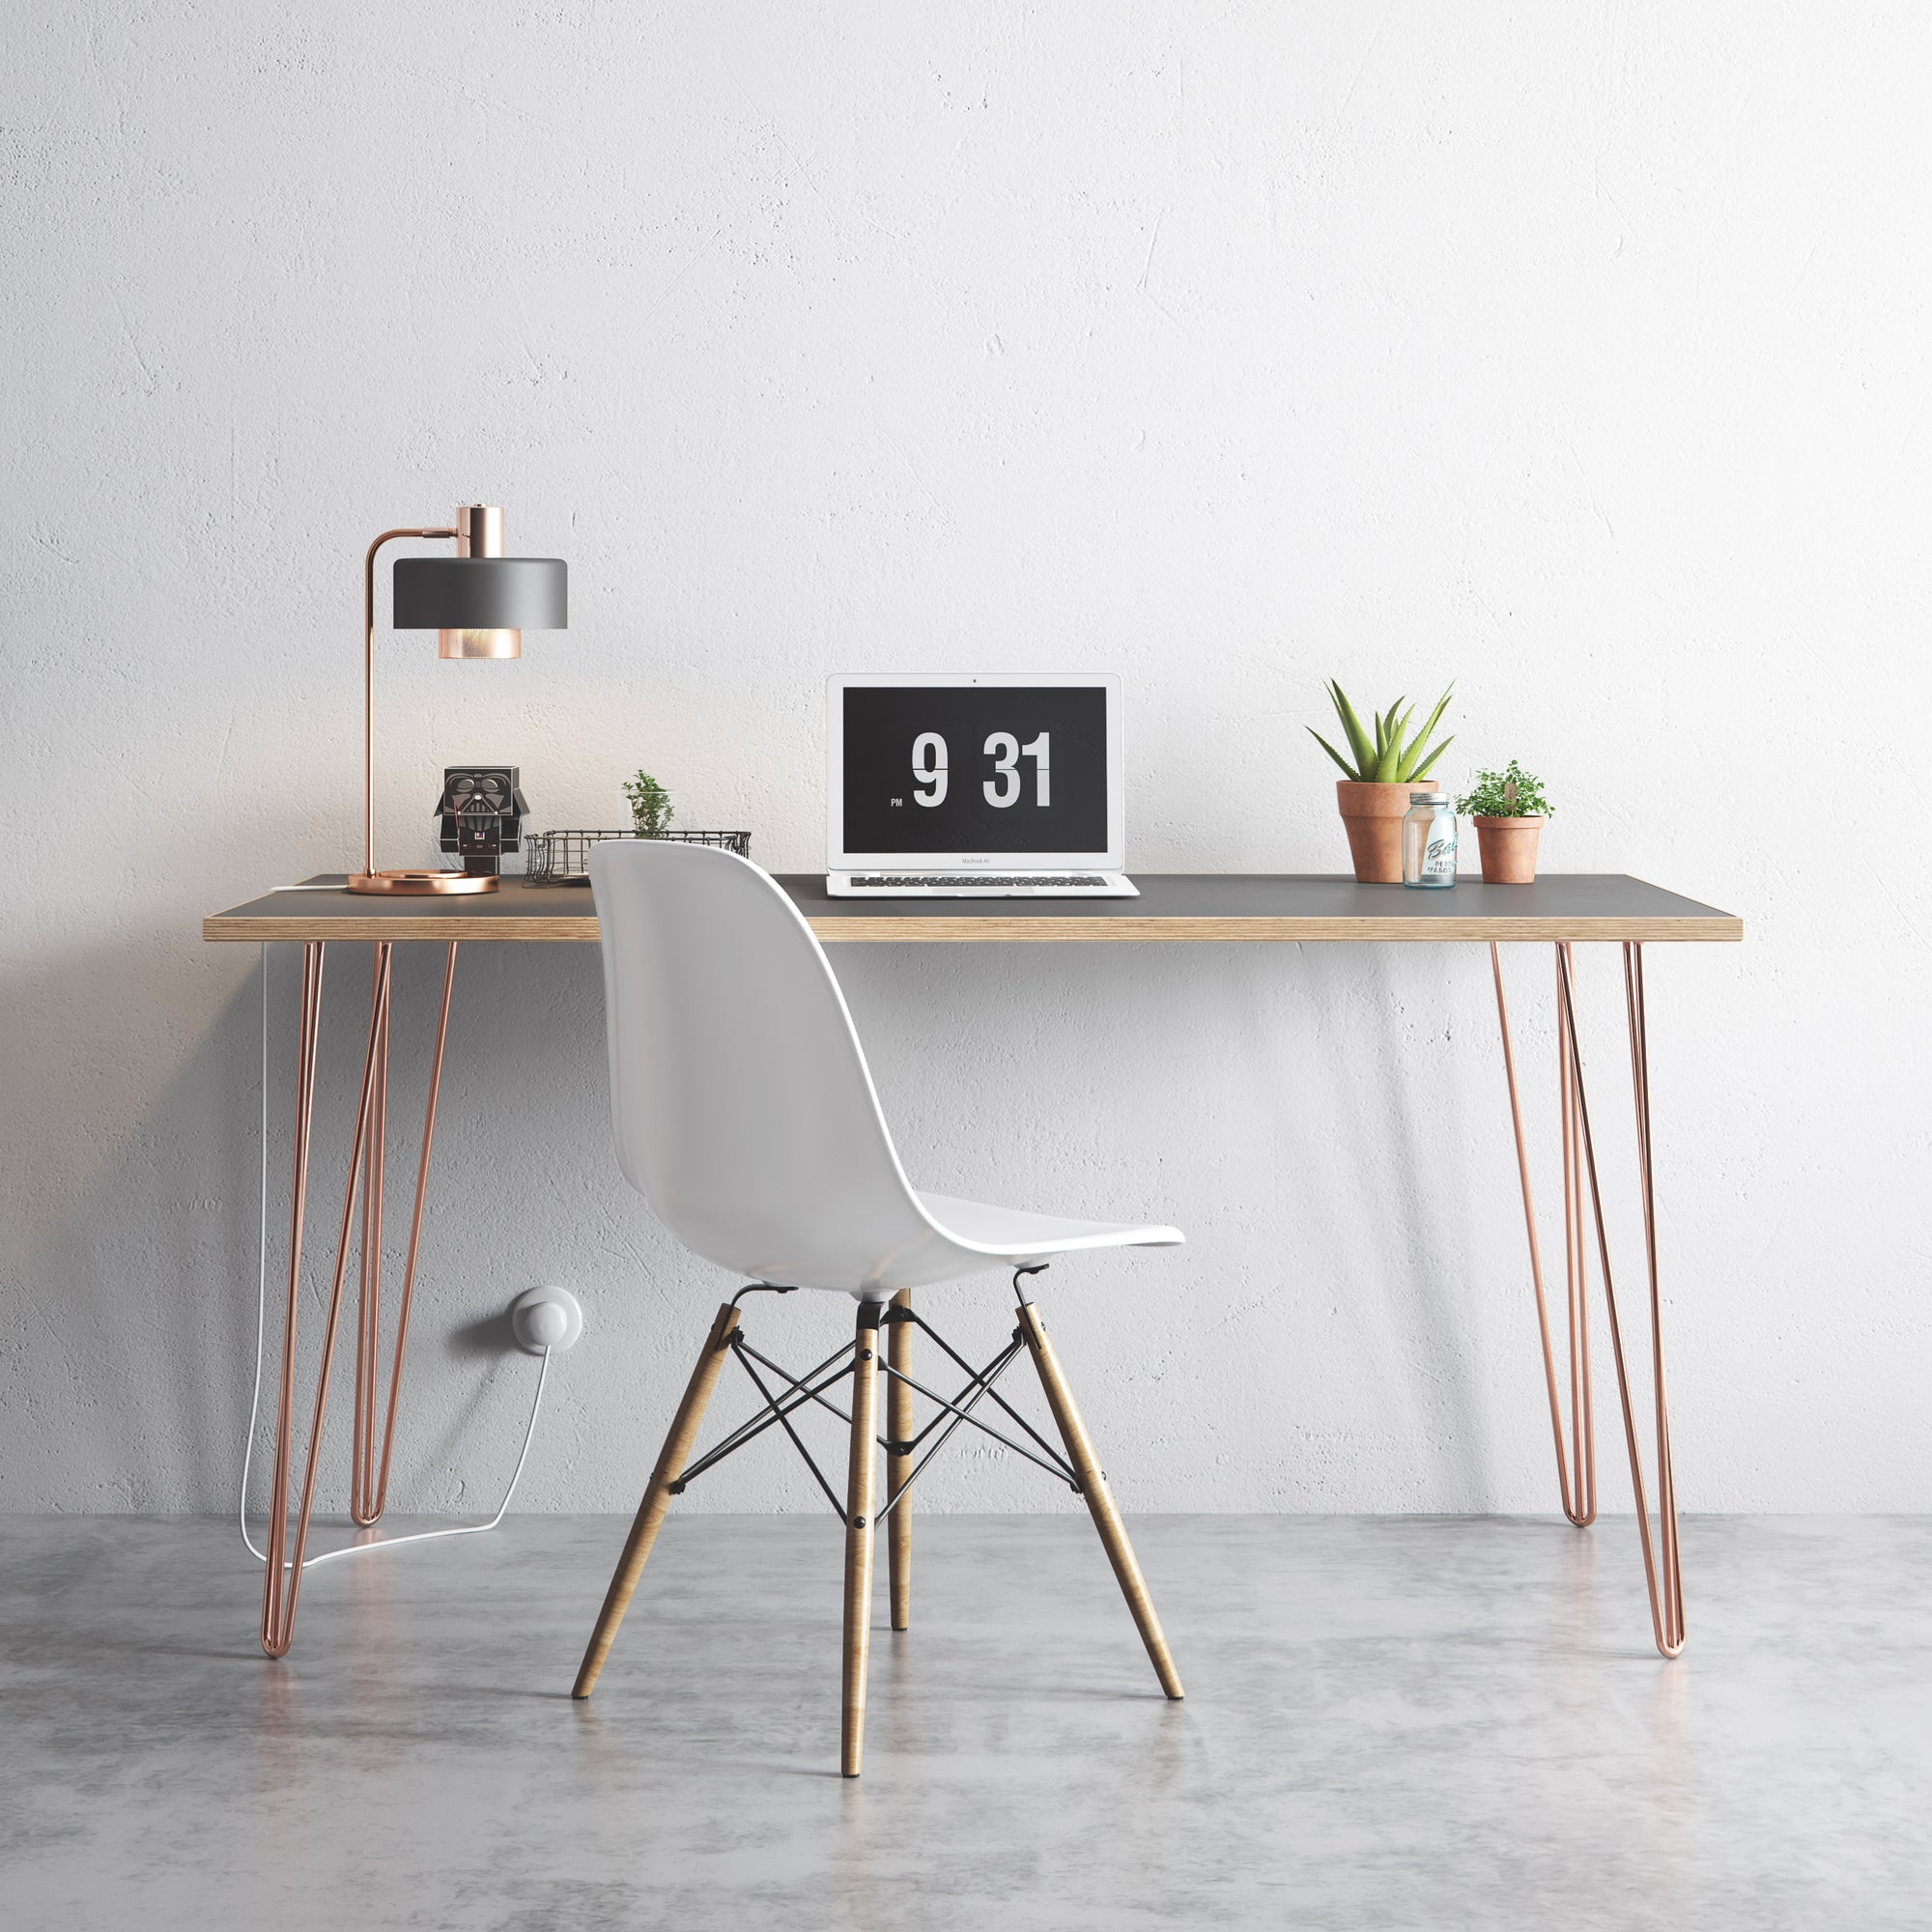 desk comfy and with leg small home furniture legs wood creative design office table accessories idea diy inspiring hairpin